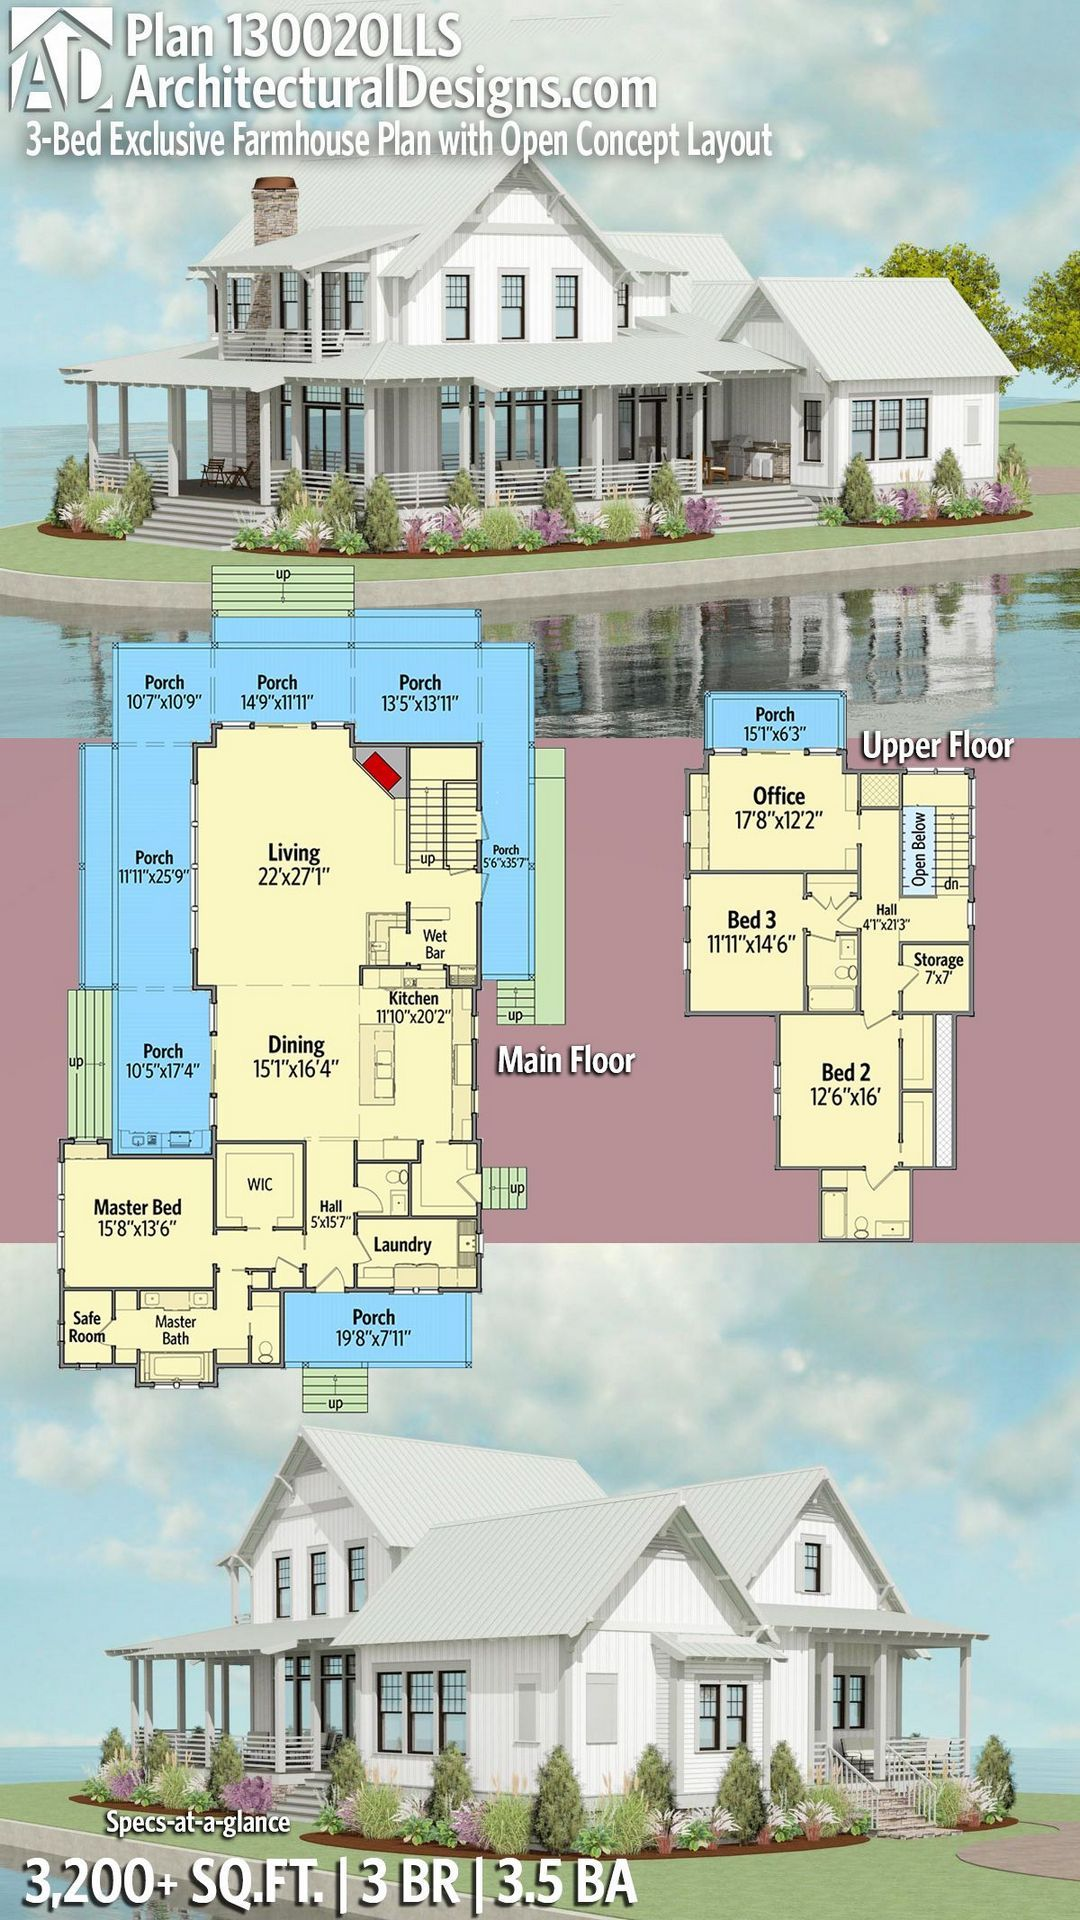 Would Use Master Bed As Schoolroom And Master Closet Perhaps As Toddler Play Room Then All On Same Fl House Plans Farmhouse Dream House Plans Farmhouse Plans